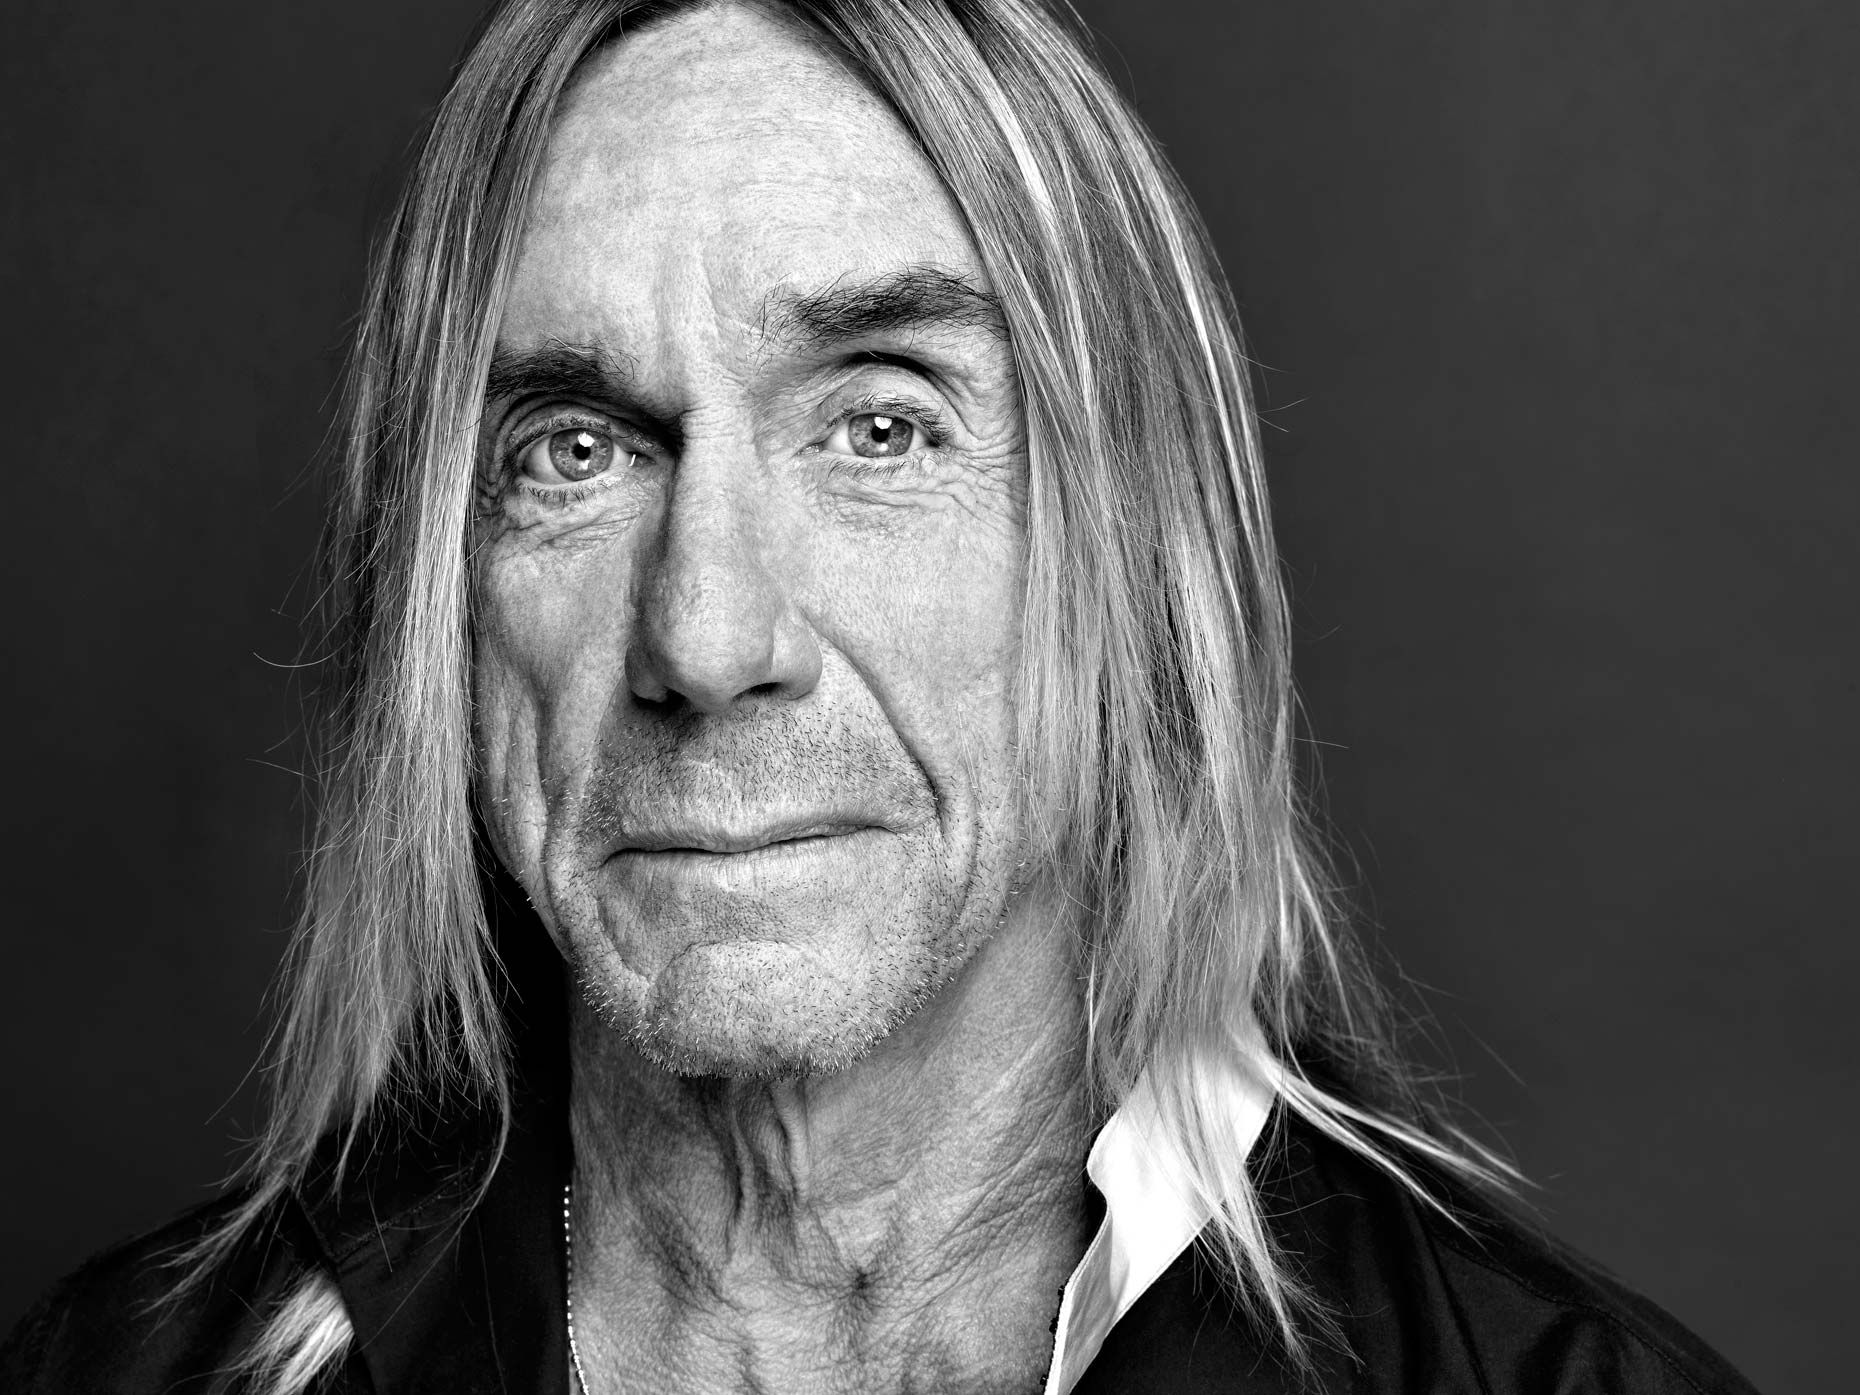 Billedresultat for iggy pop